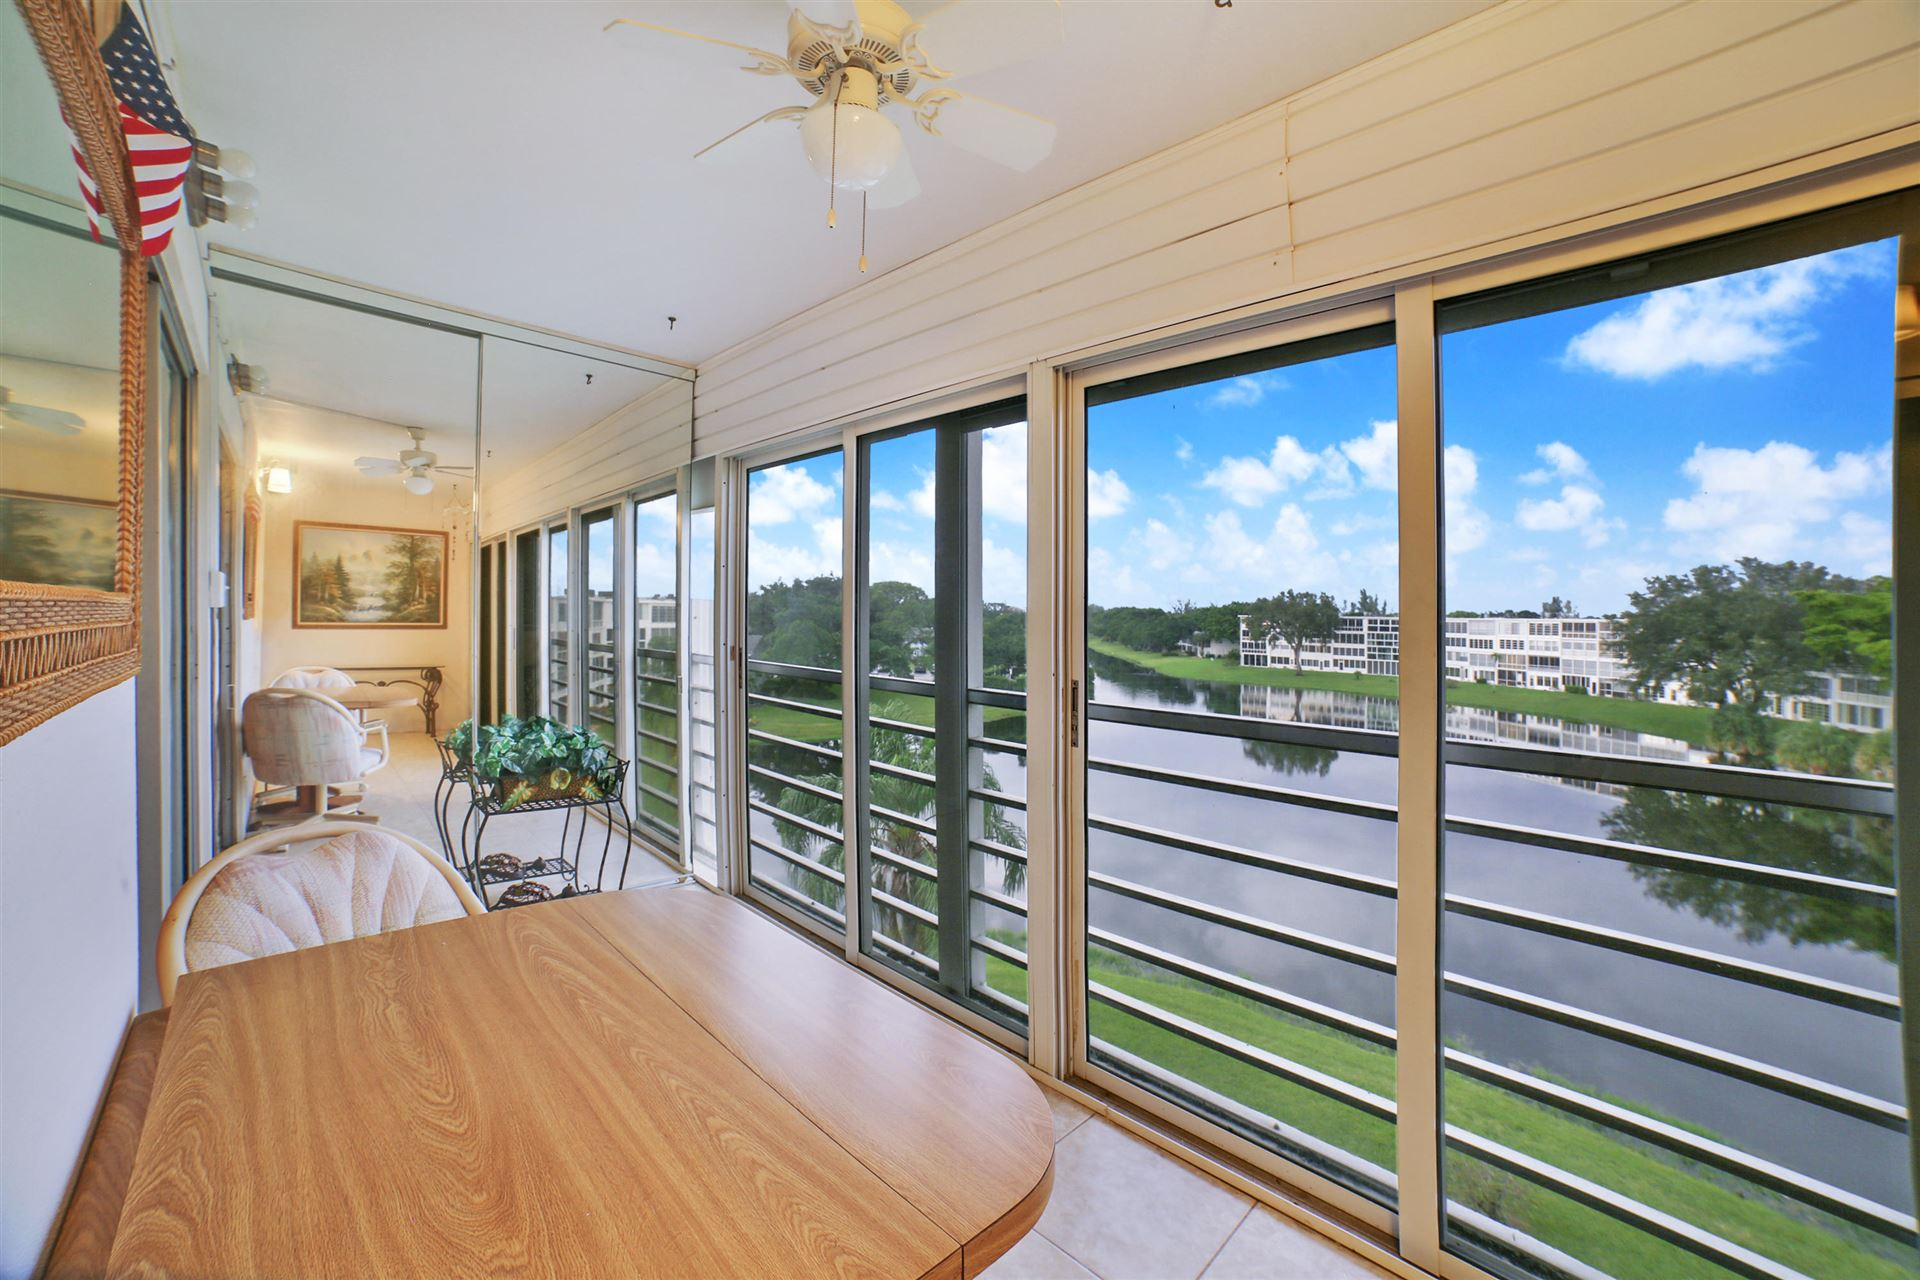 4019 Oakridge A #4019, Deerfield Beach, FL 33442 - #: RX-10666665